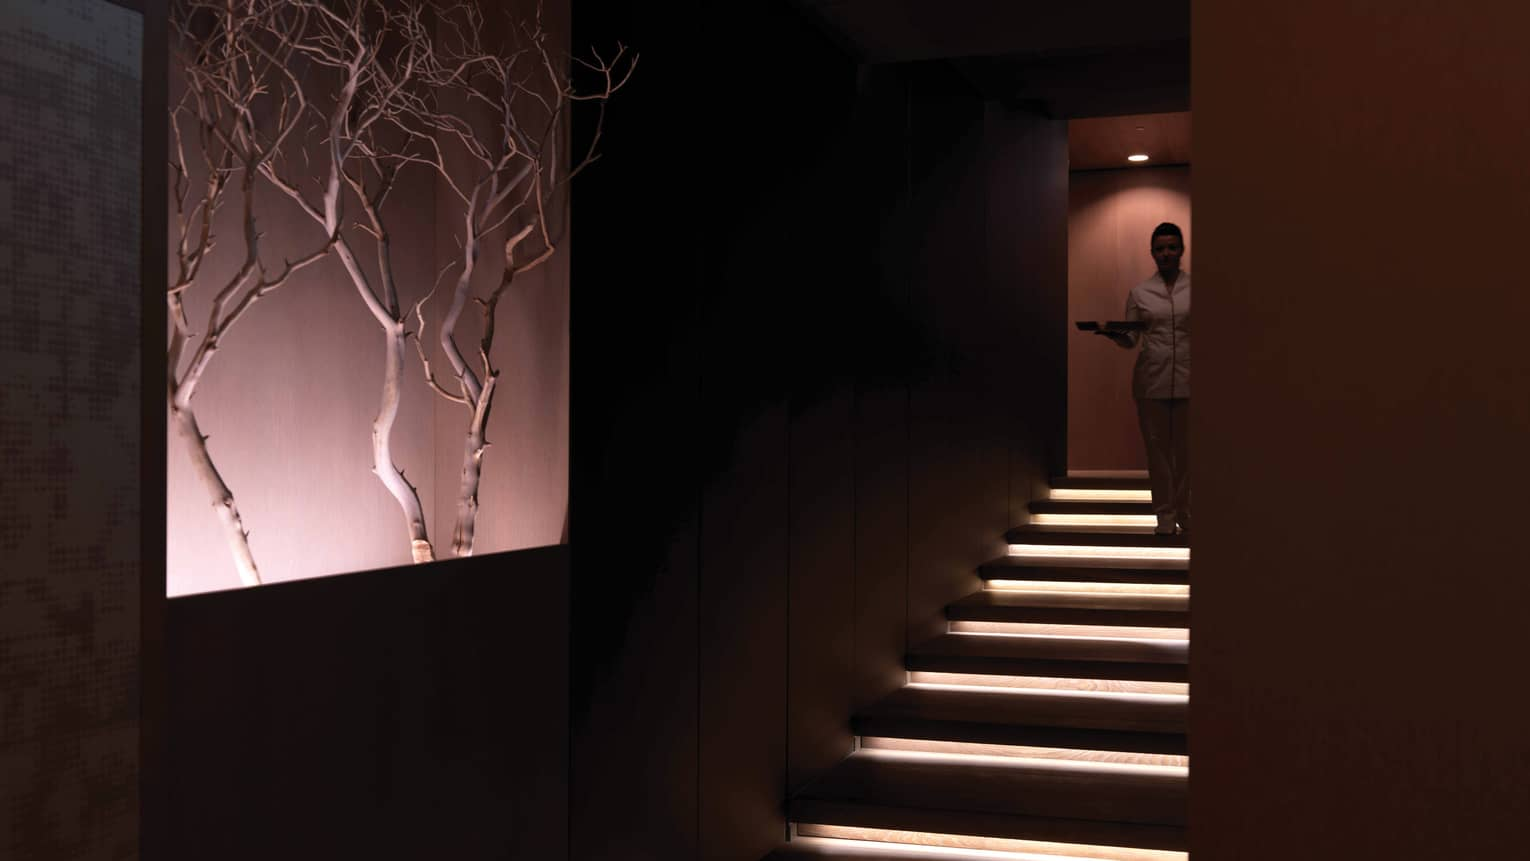 Spa staff descends down illuminated stairs, wall display with branches